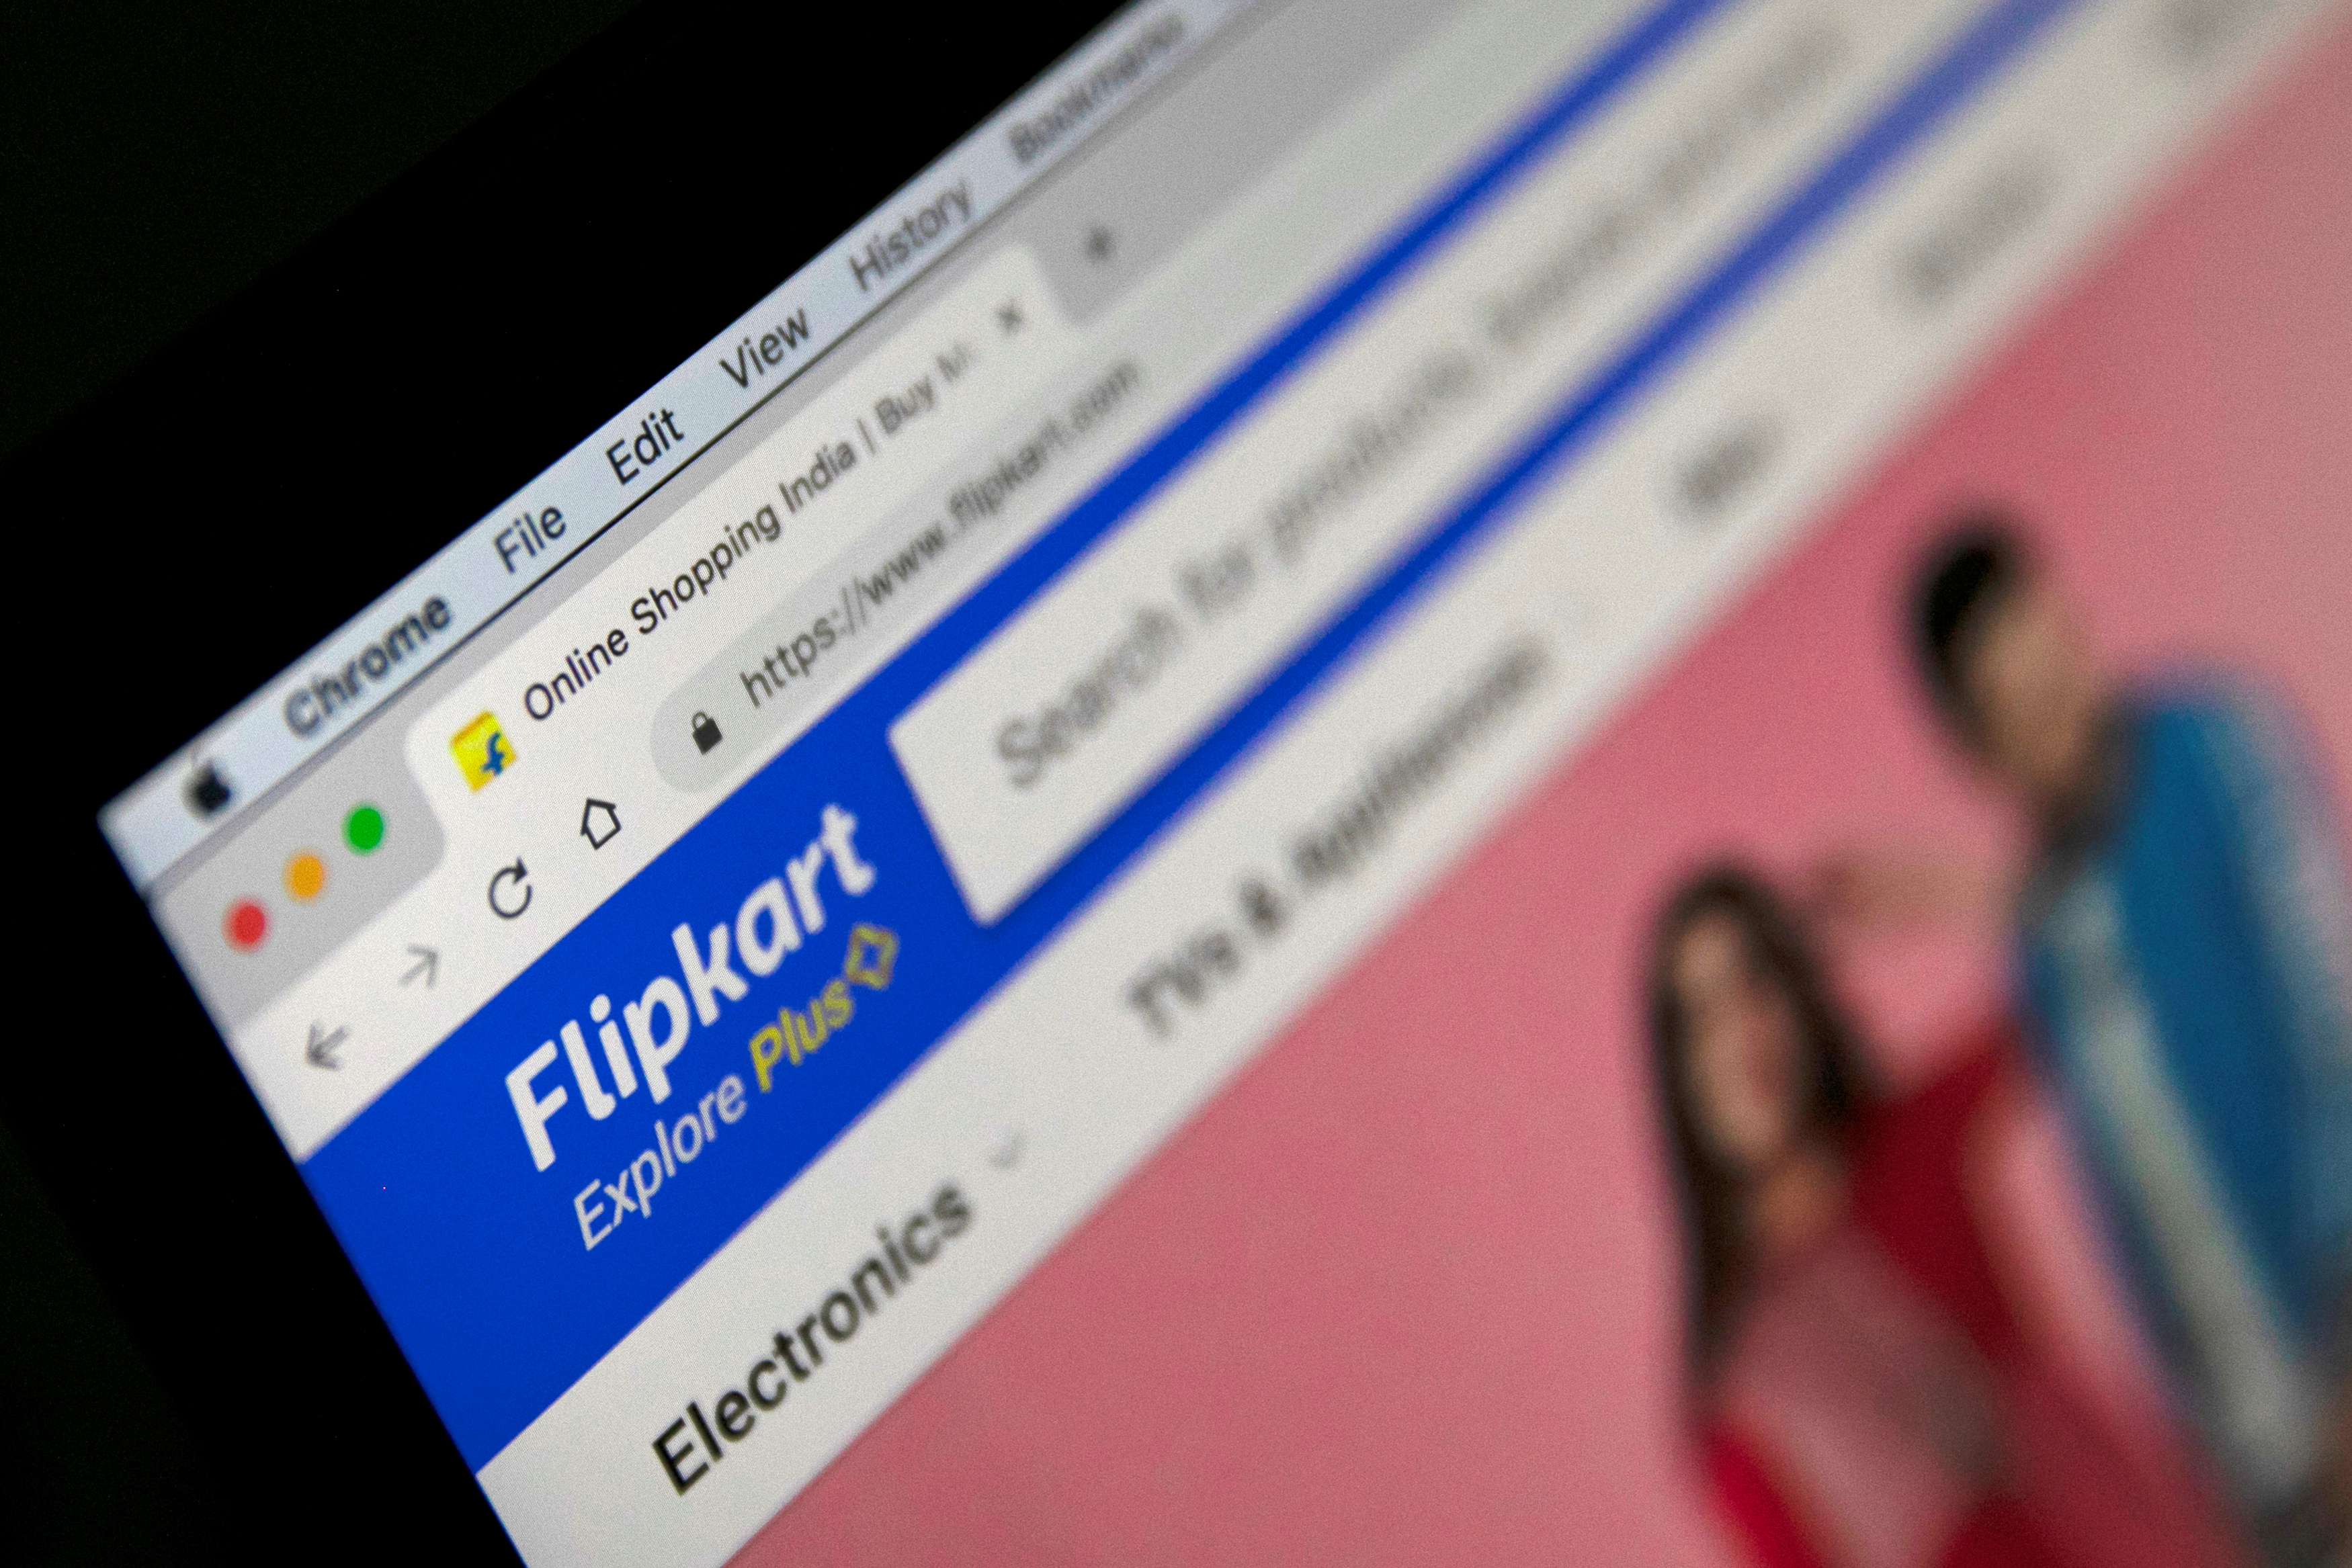 The logo of India's e-commerce firm Flipkart is seen in this illustration picture taken January 29, 2019. REUTERS/Danish Siddiqui/Illustration/File photo